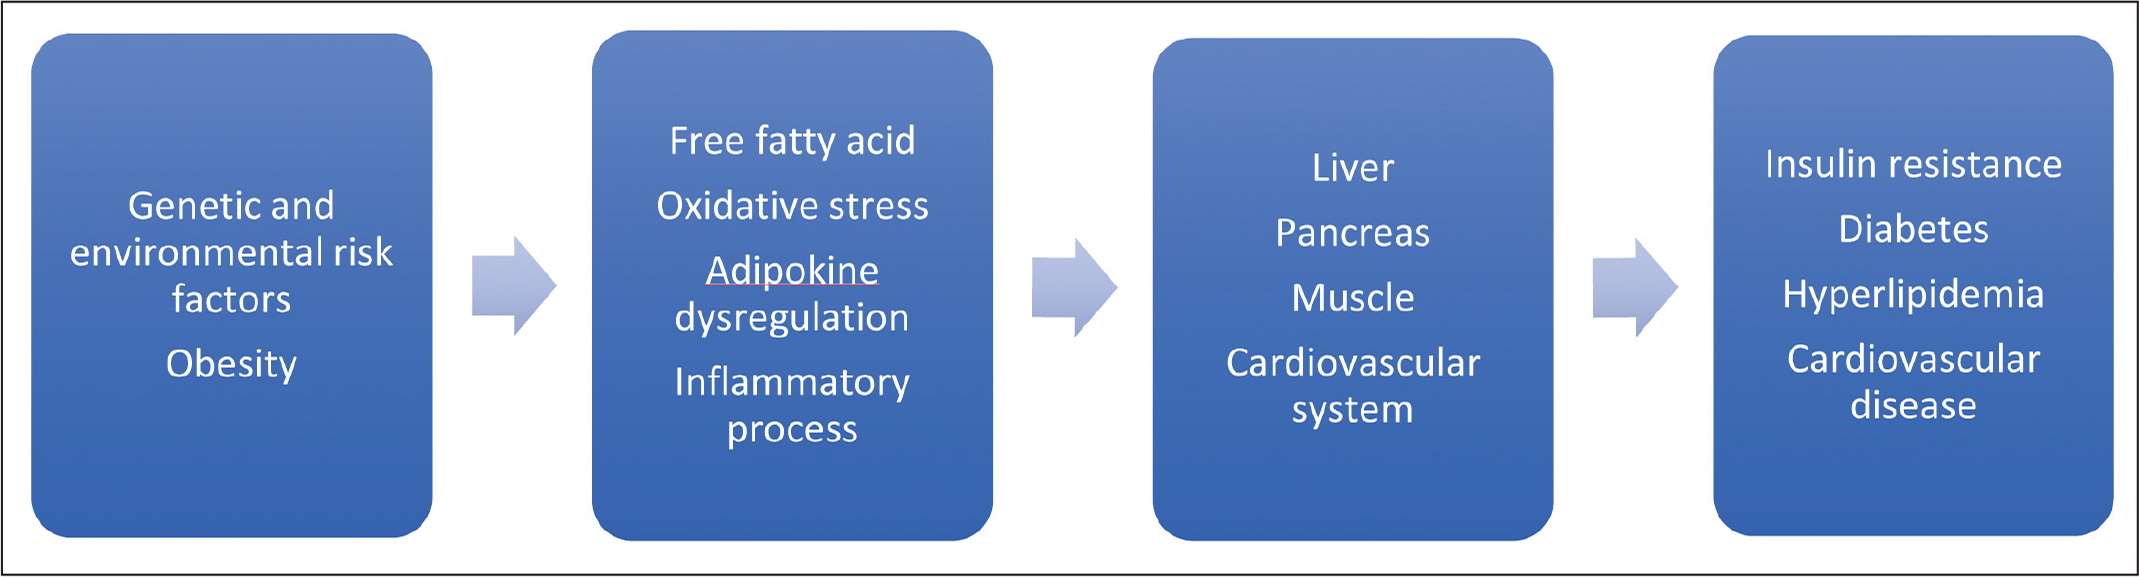 Obesity leads to increase in free fatty acids, oxidative stress, and adipokine dysregulation (increase in inflammatory and decrease in anti-inflammatory peptides/proteins), affecting multiple organ systems, which can ultimately can lead to insulin resistance, diabetes, hyperlipidemia, and cardiovascular disease.